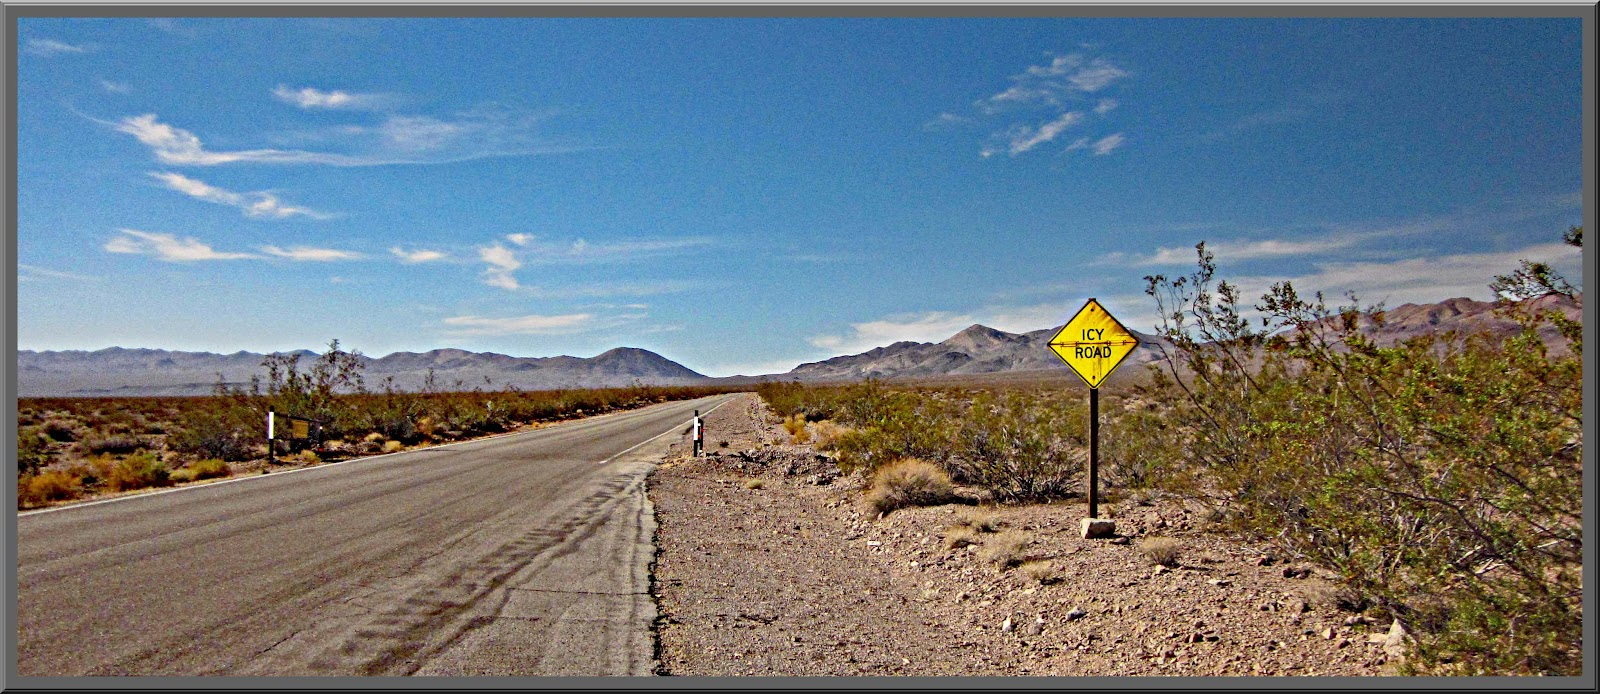 Biking up Dantes View Death Valley - Icy Road sign in death valley